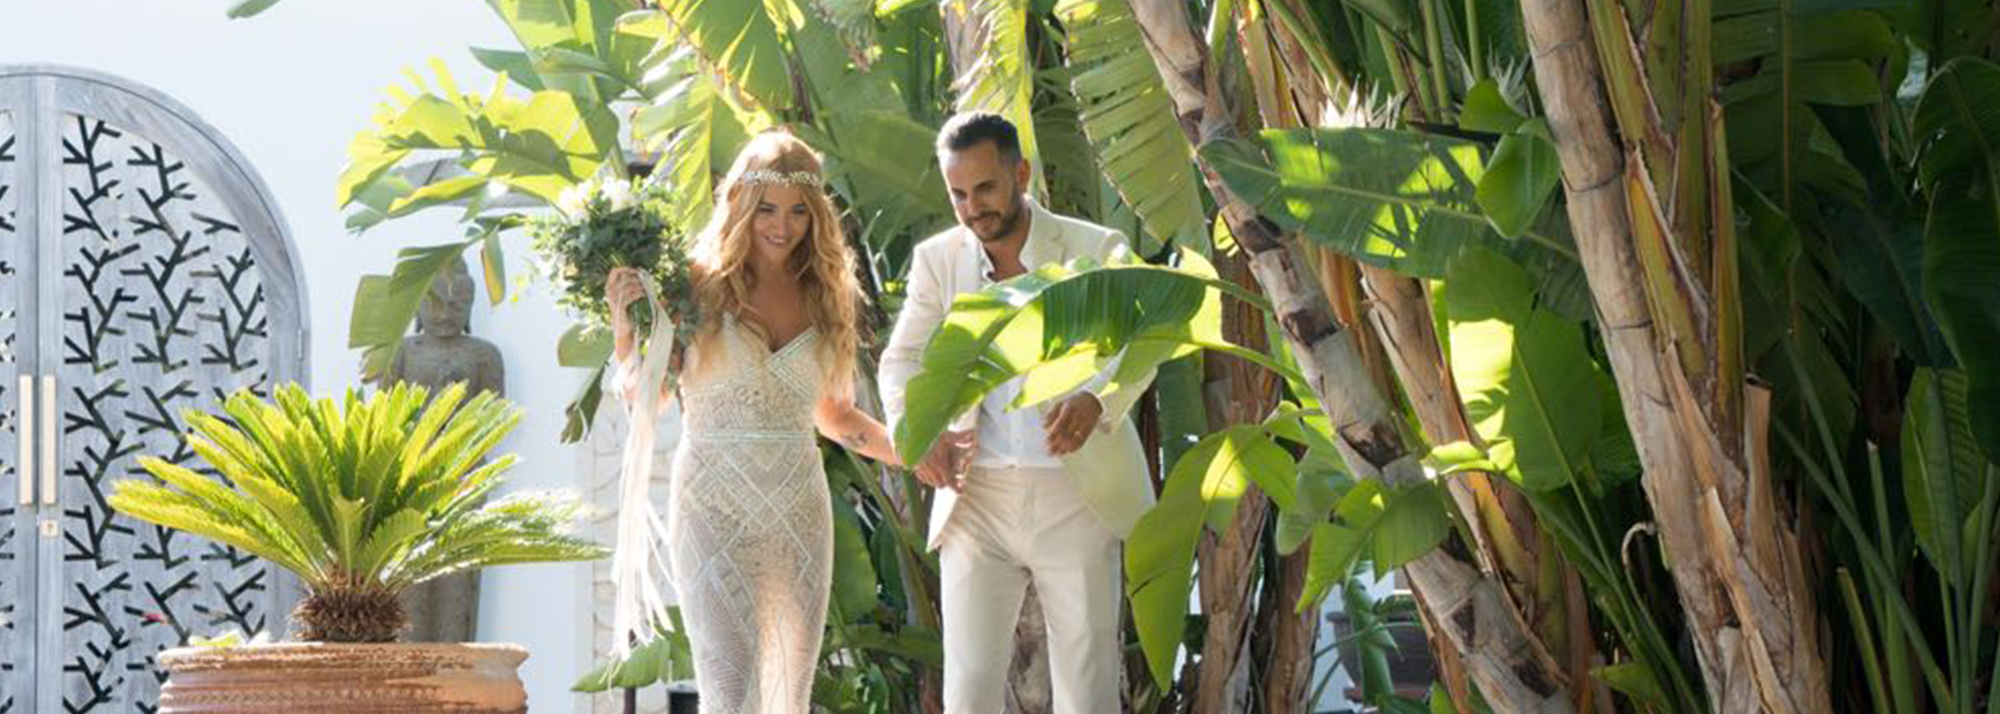 Ibiza wedding venue ideas